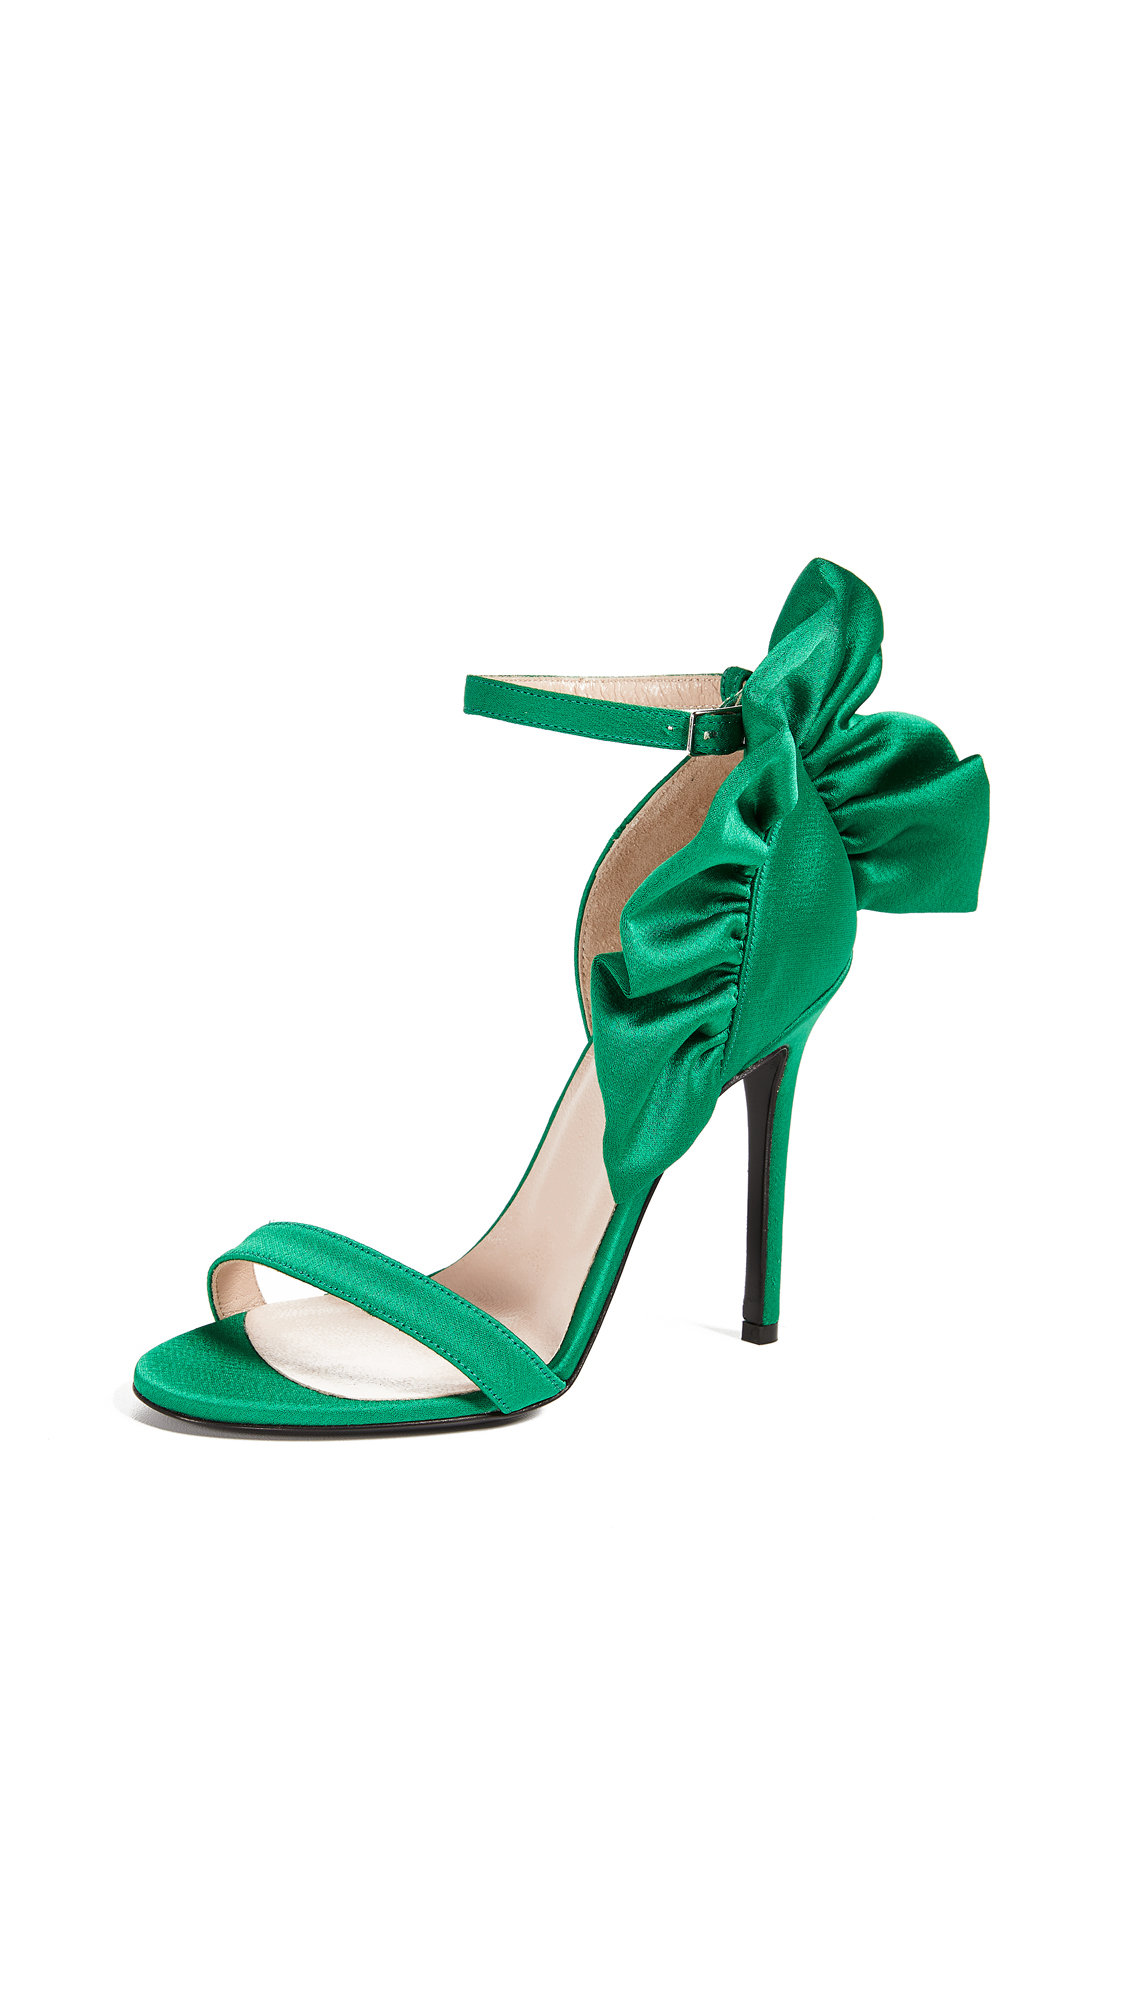 MSGM Rouche Sandals In Green